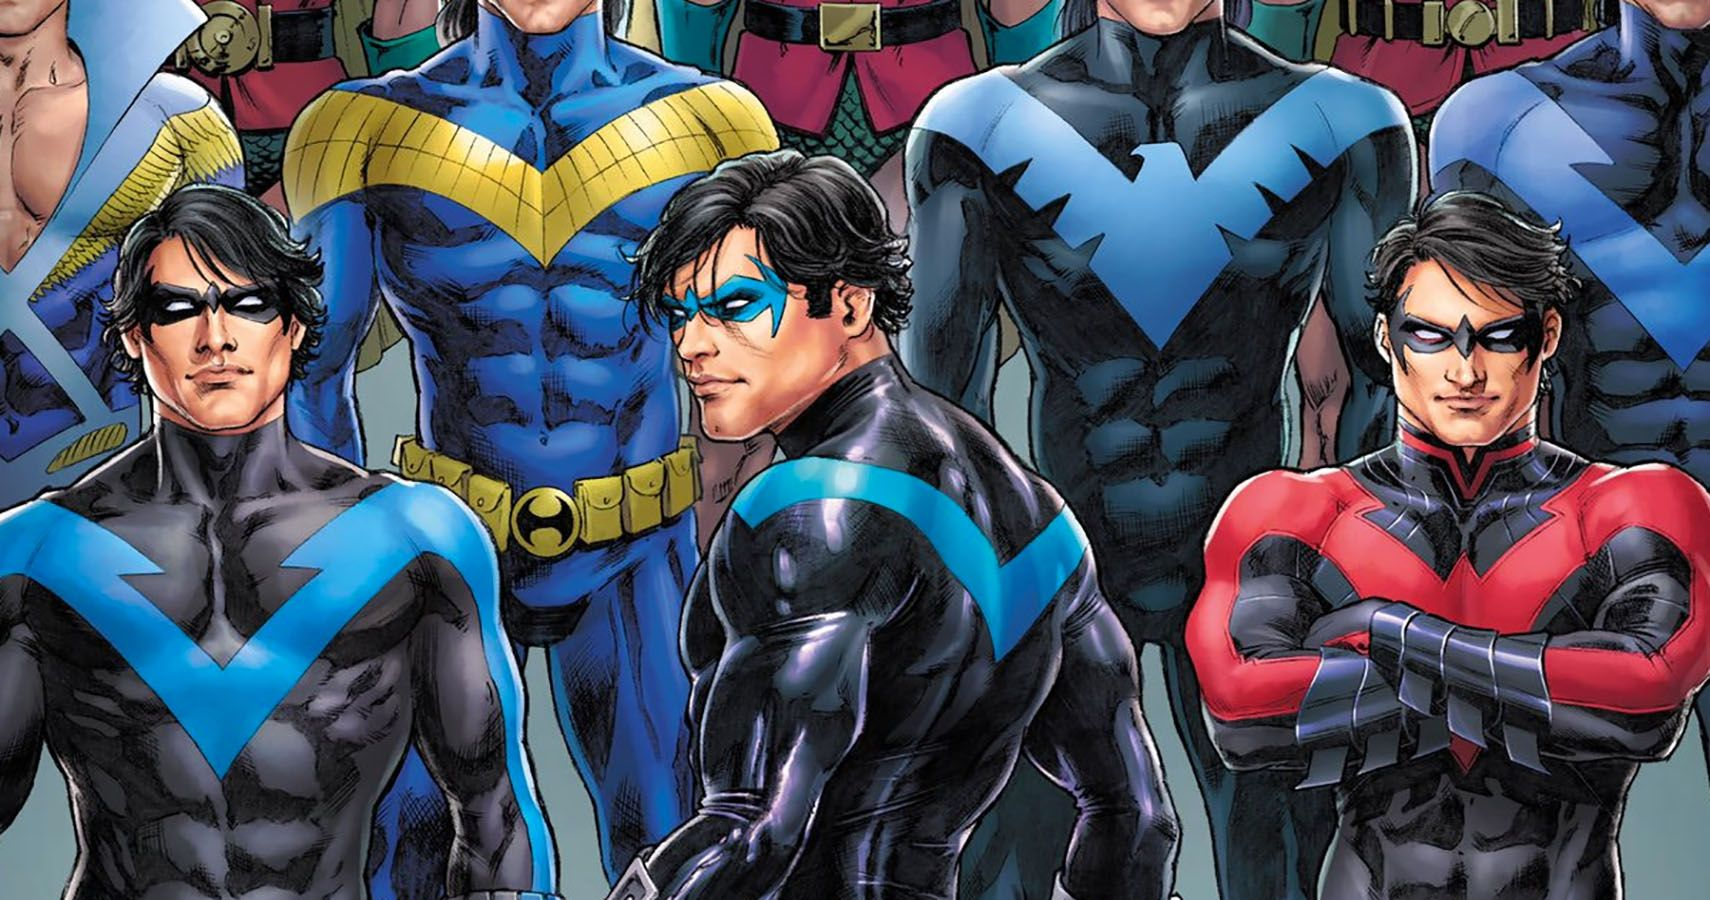 The 10 Worst Things DC Has Done to Dick Grayson | CBR